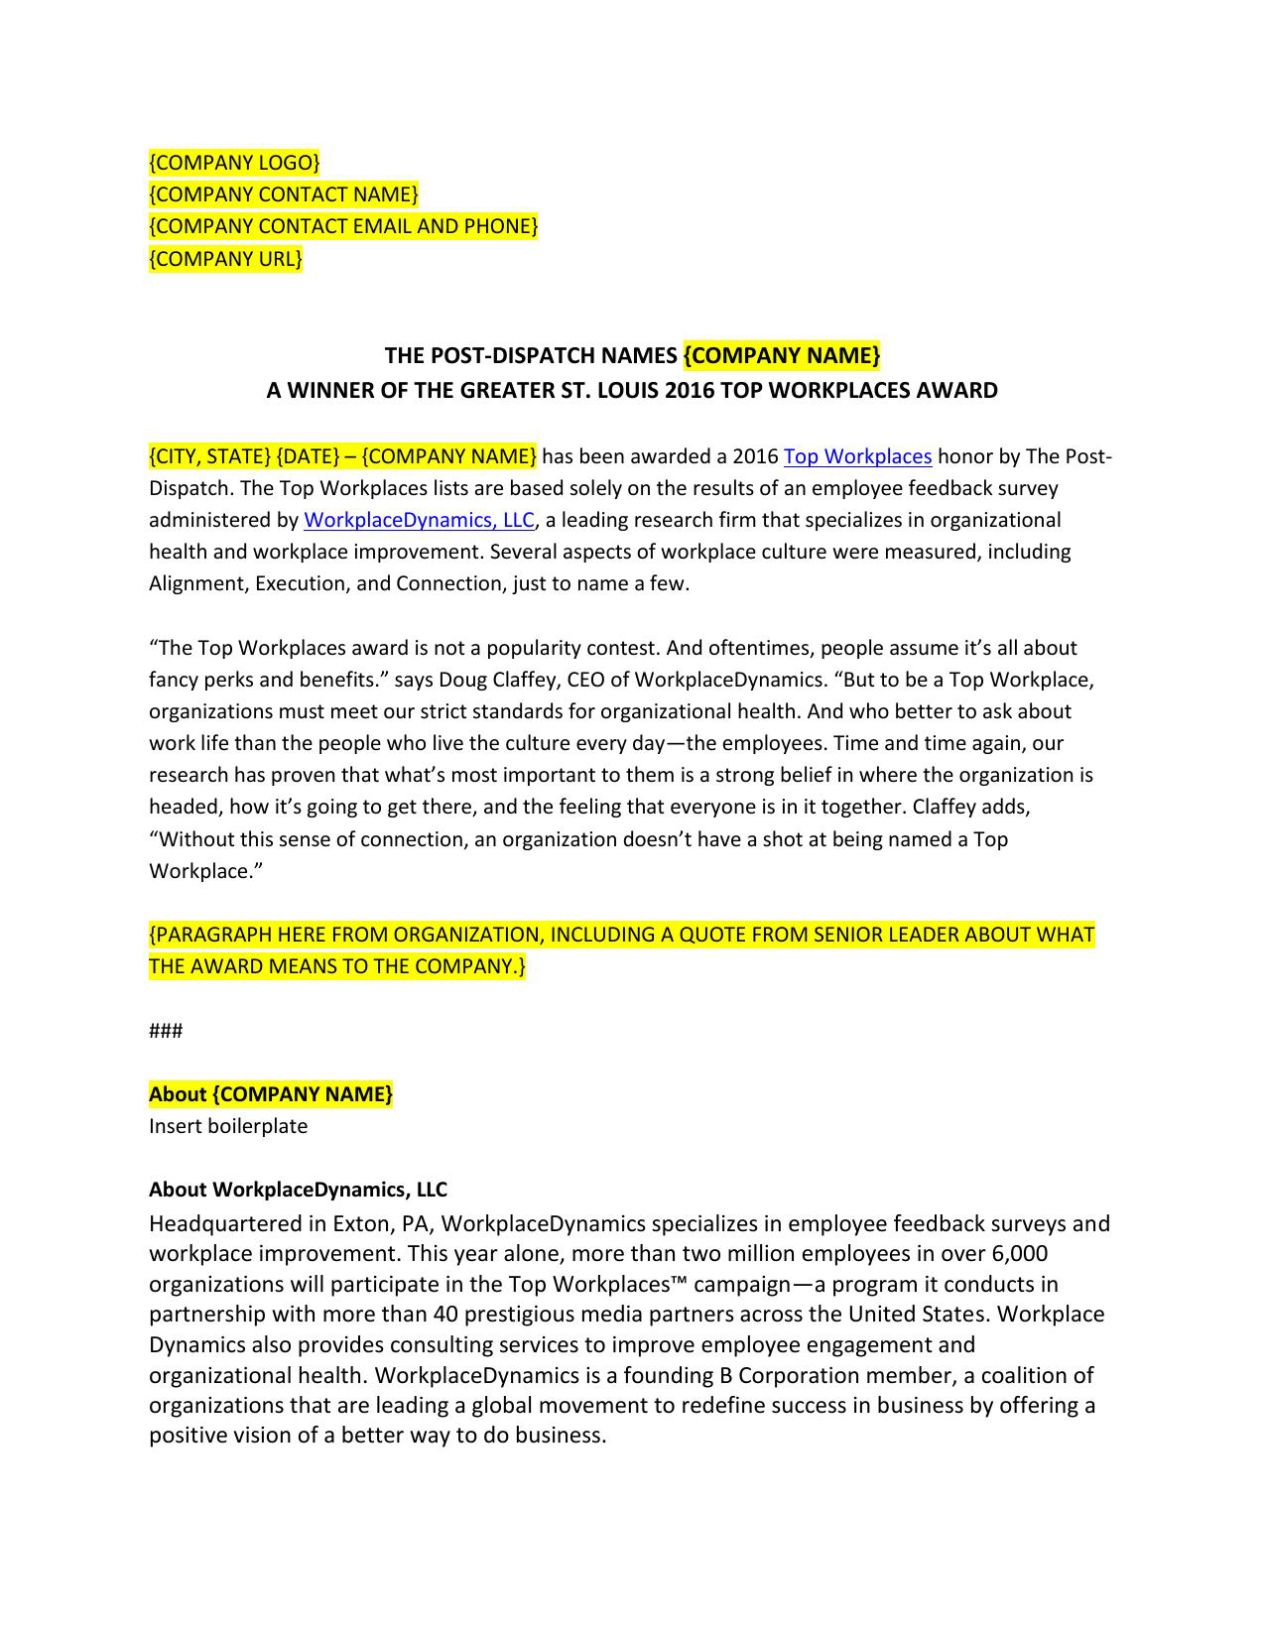 Press Release Template 2016 Press Release Template Top Workplaces Stltoday